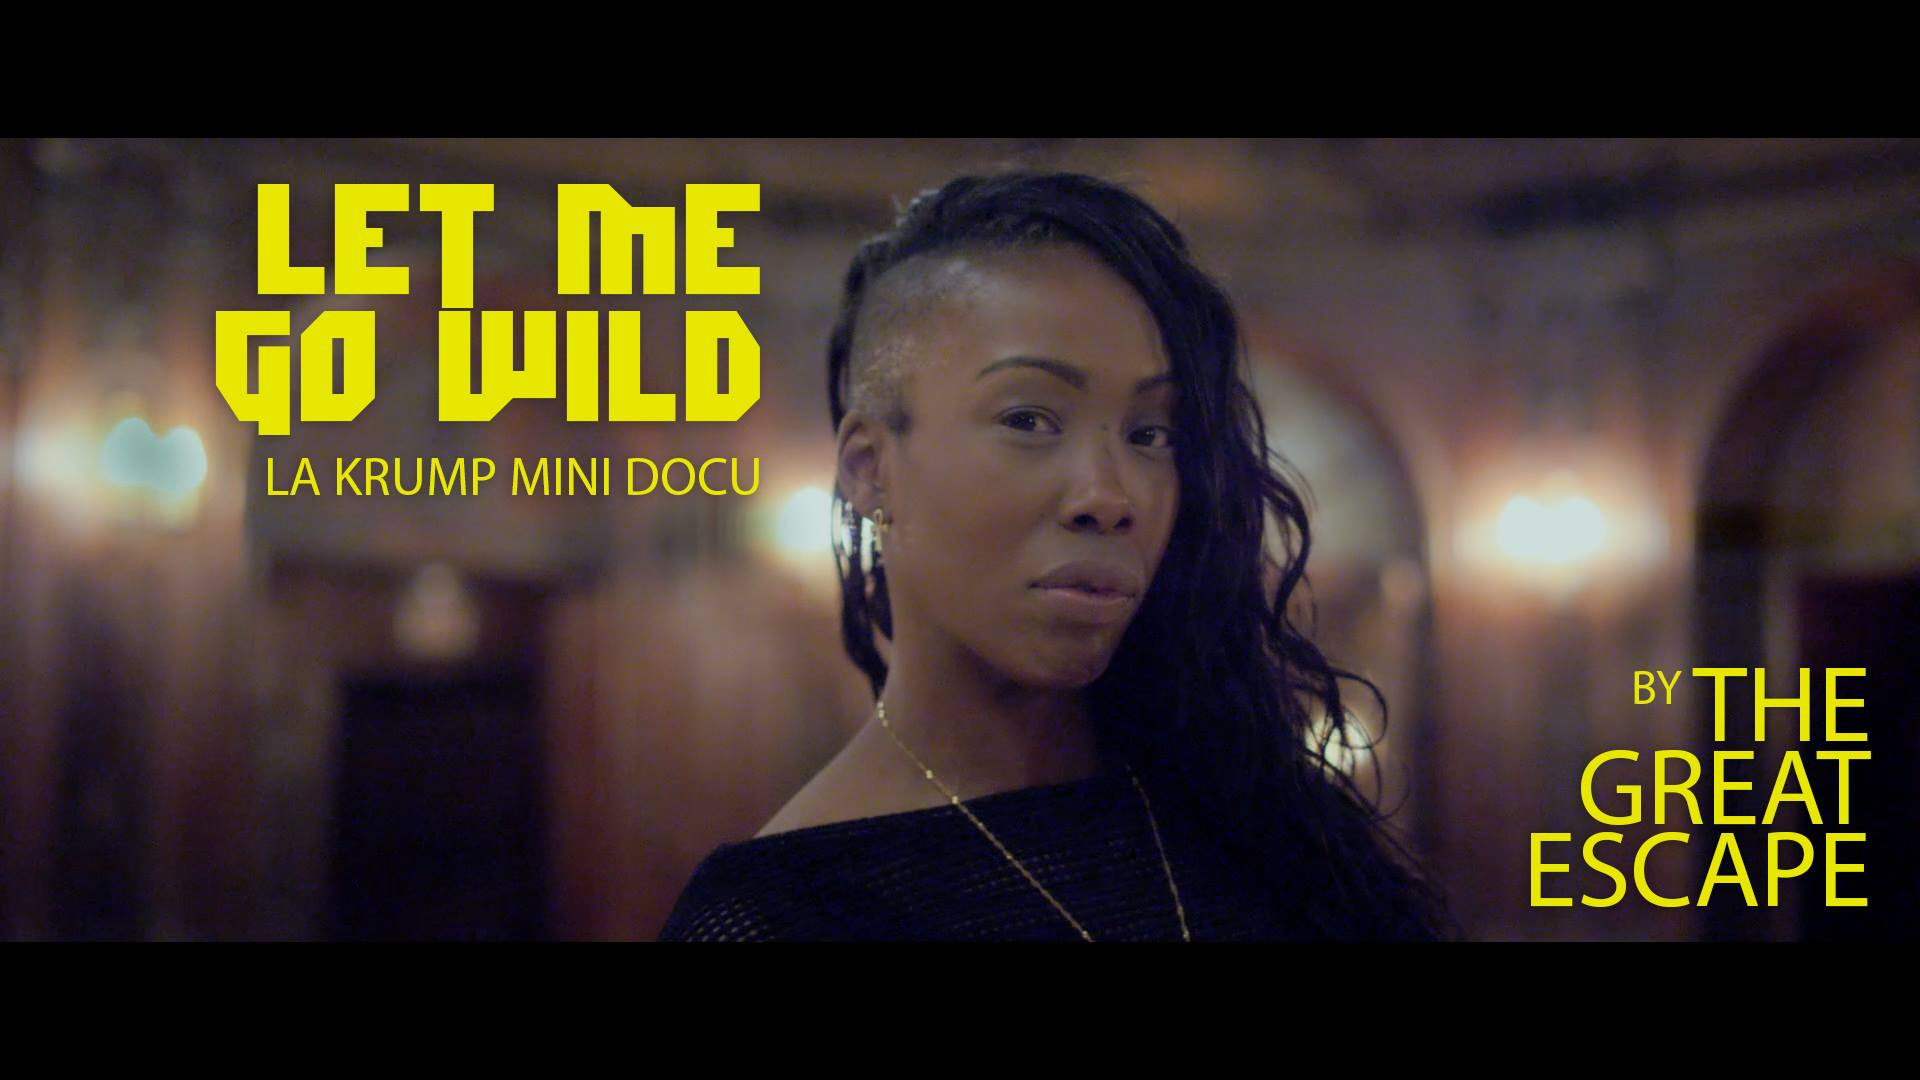 The Great Escape - Let Me Go Wild (LA Krump Mini Docu)